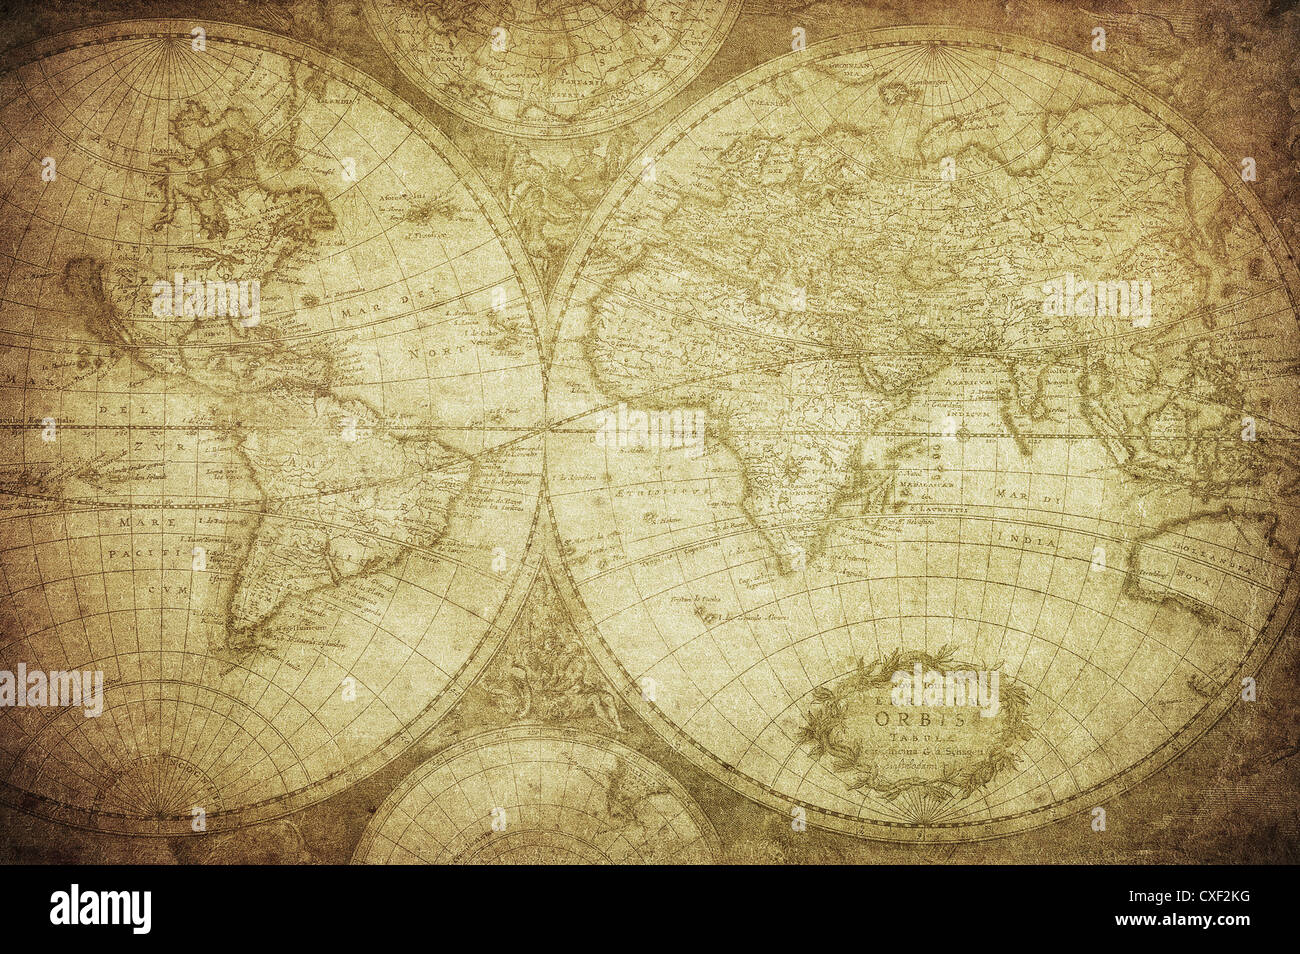 vintage map of the world 1675 - Stock Image